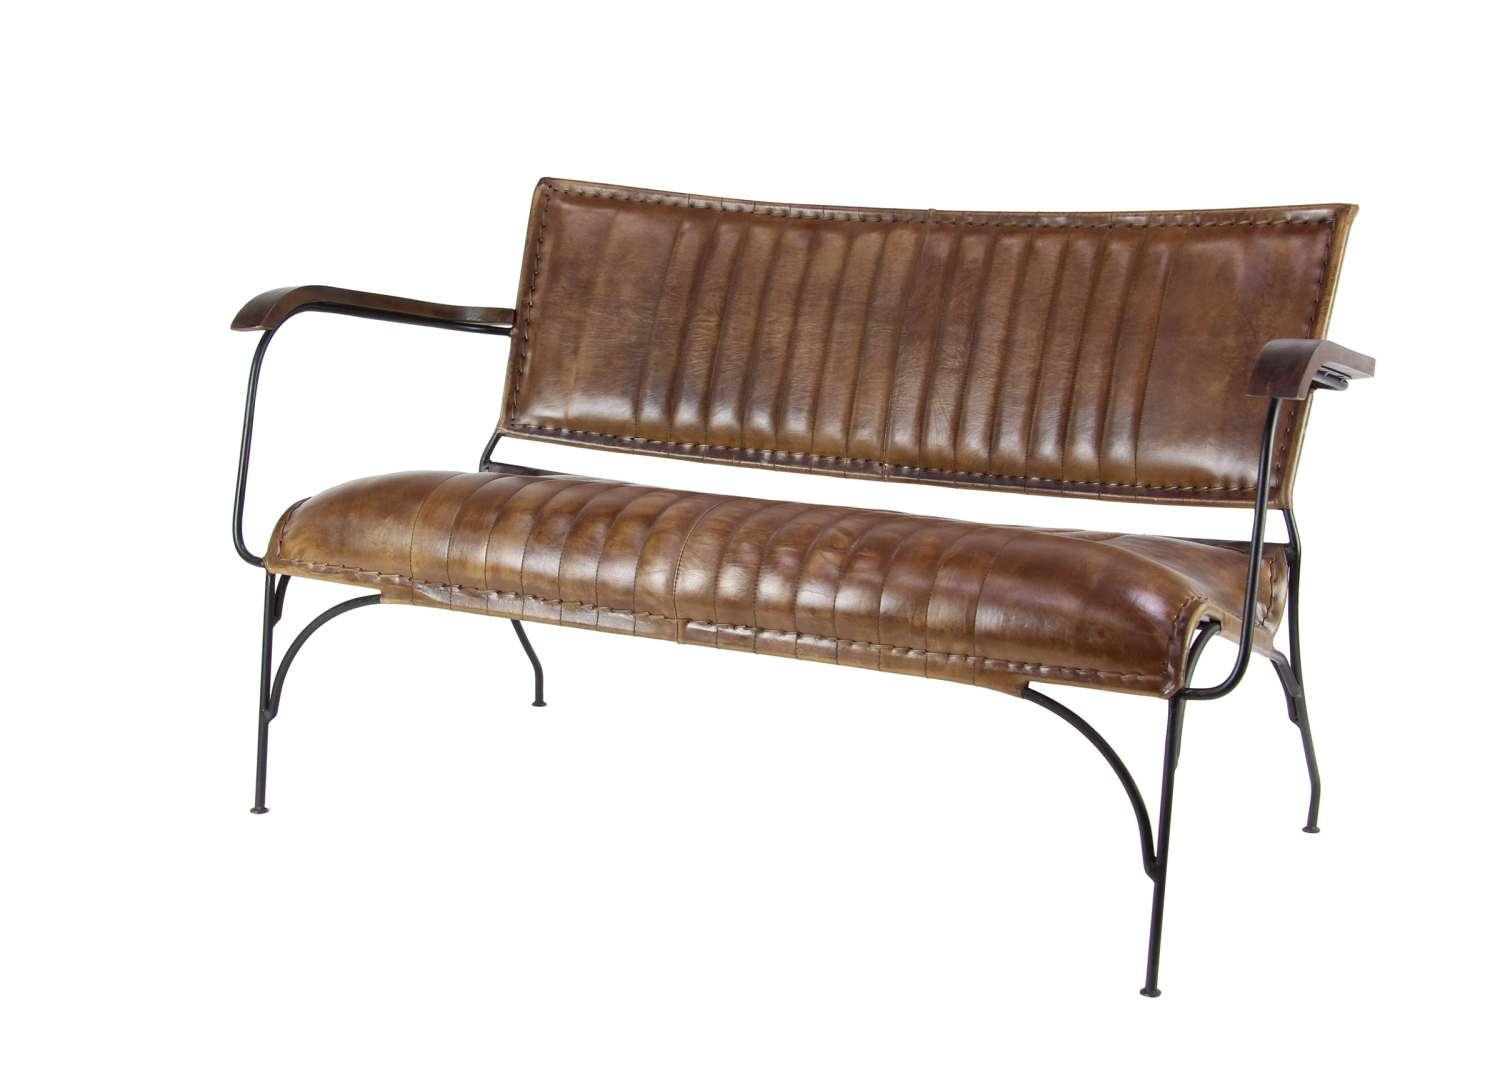 50 x 28-Inch Iron And Leather Sofa